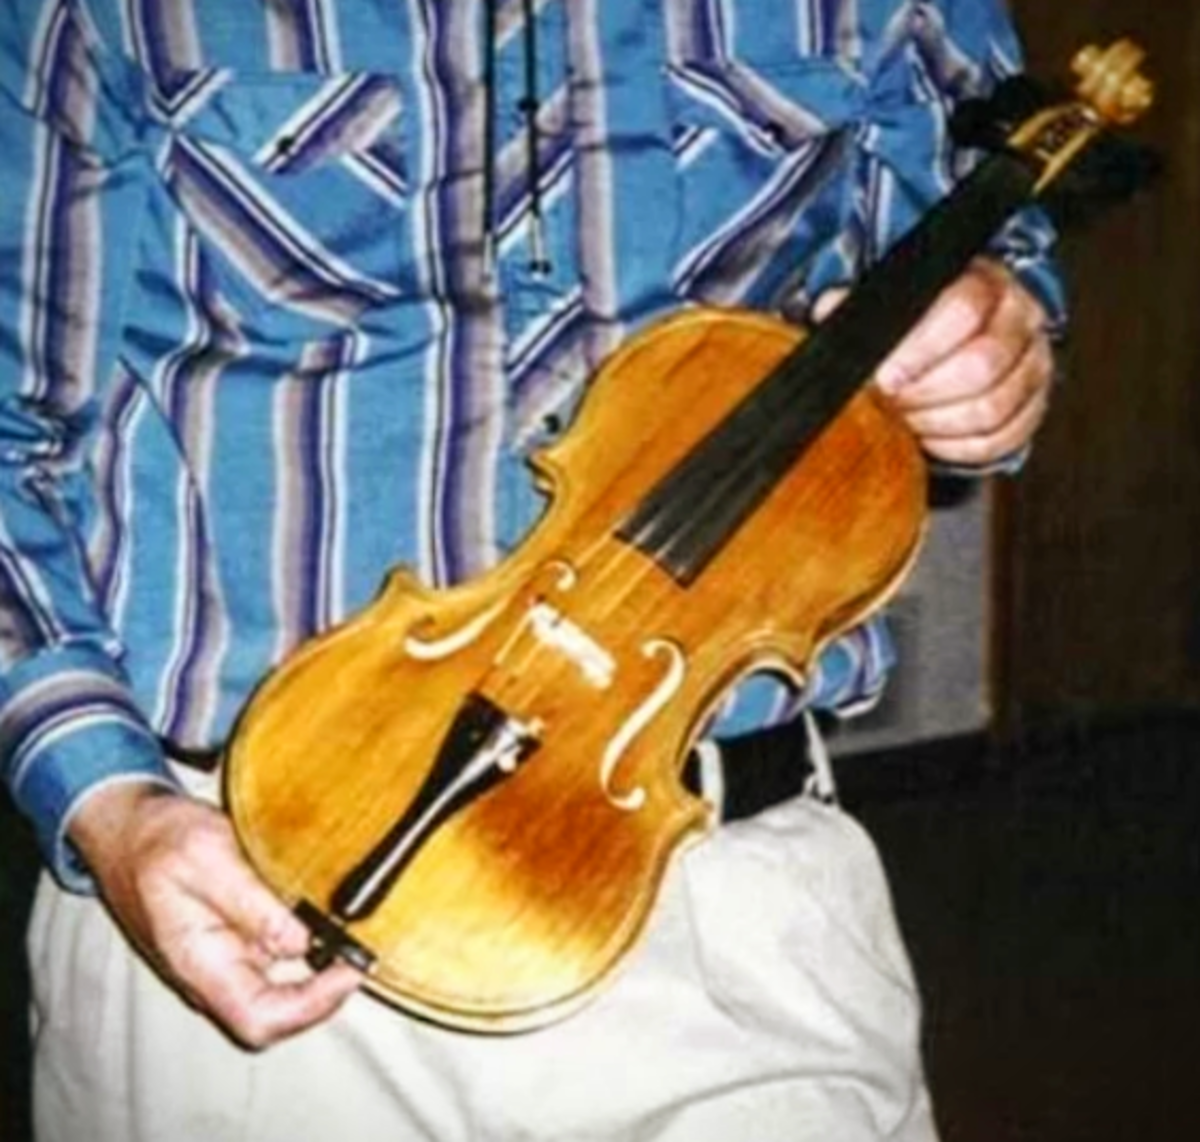 My Golden Fiddle: Homemade Violin